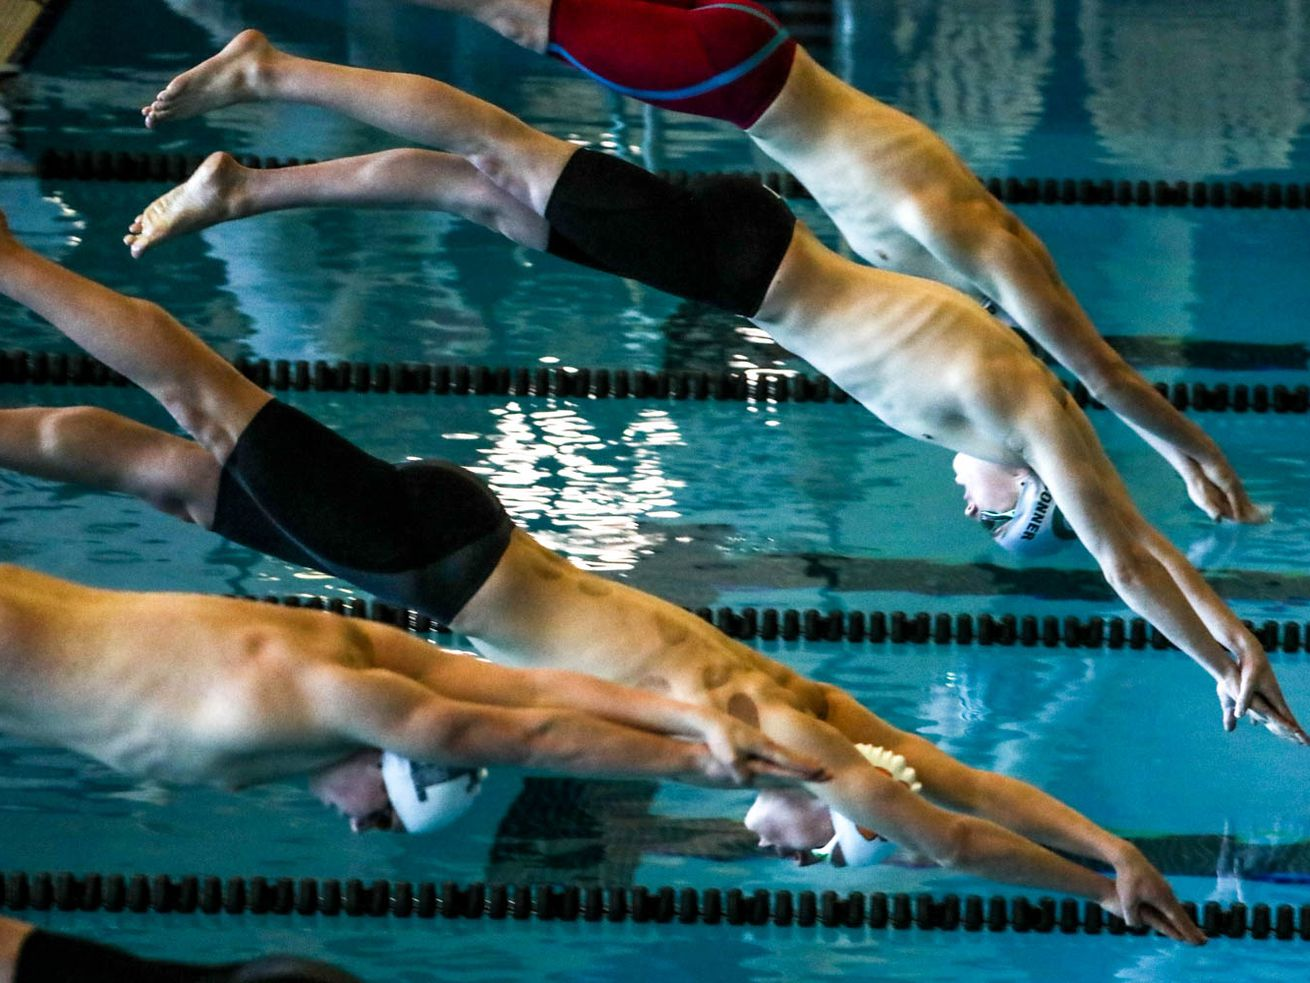 Swimmers race in the 500-yard freestyle at the 5A boys swimming state meet at the Wasatch Aquatic Center in Heber City on Saturday, Feb. 20, 2021.